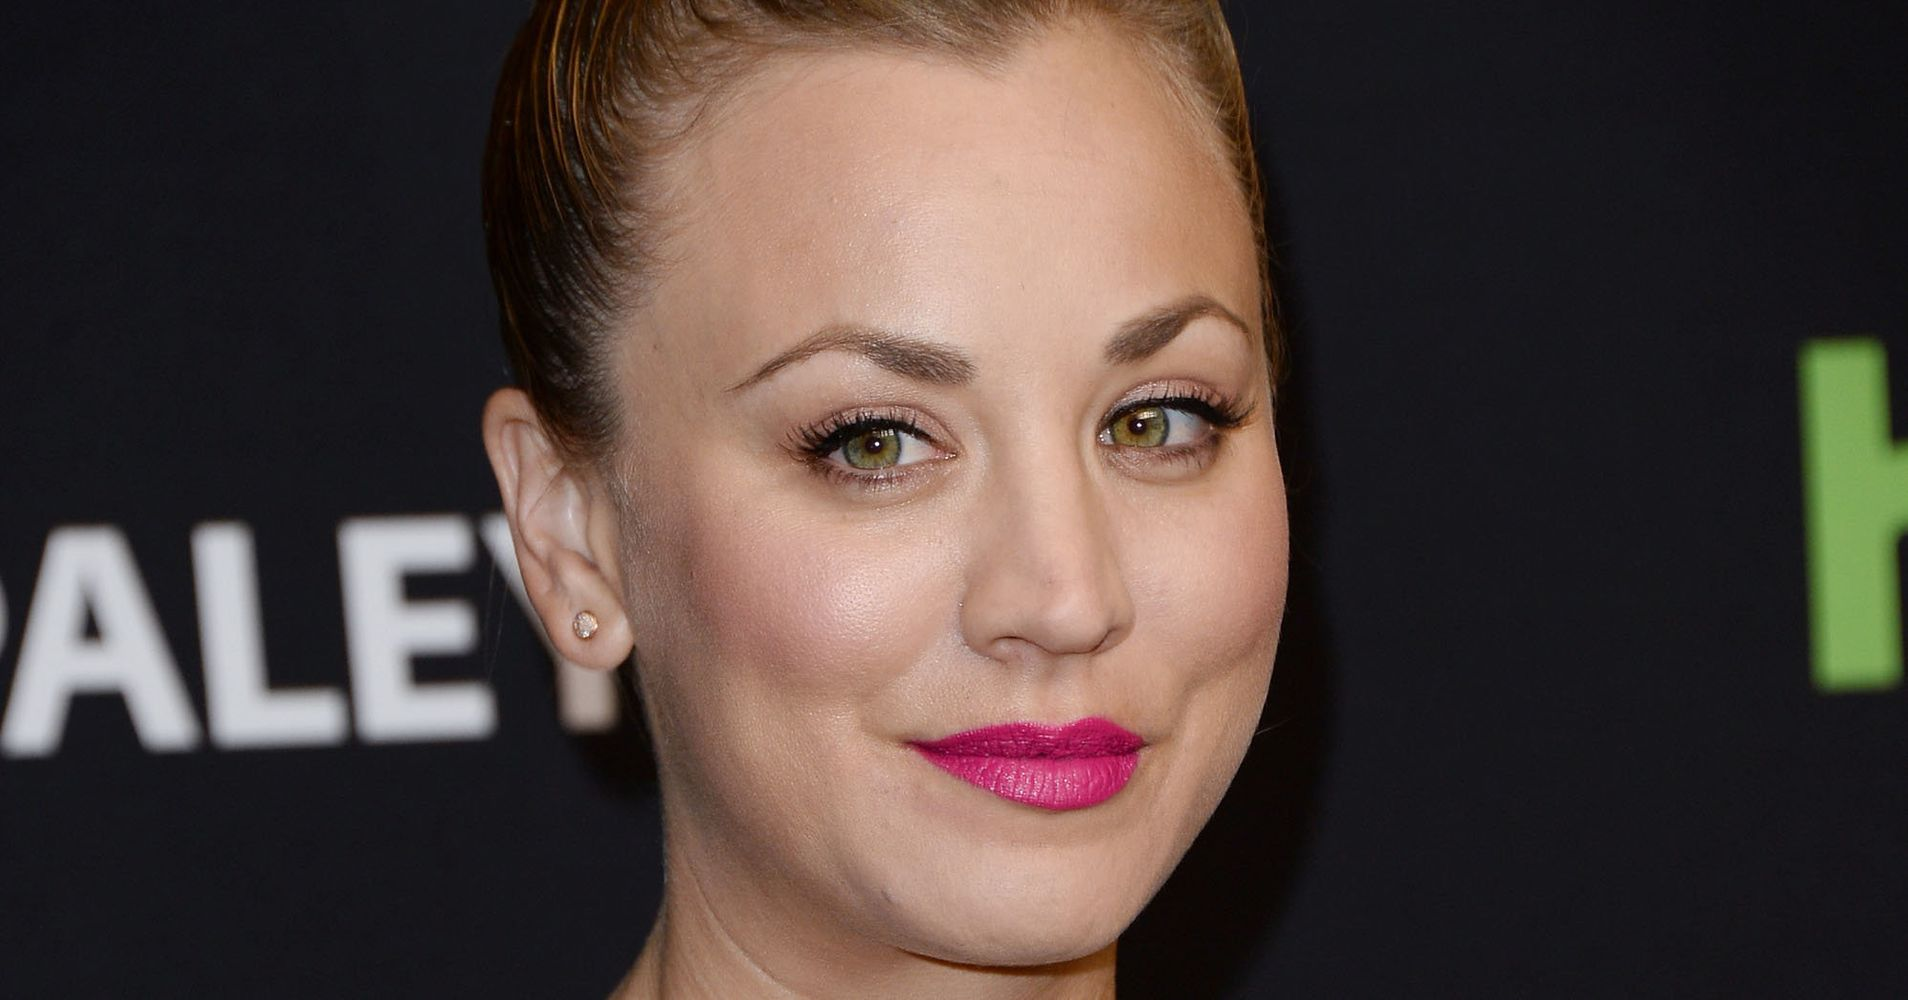 Kaley Cuoco Attempts To Go Full Method With Big Bang Theory